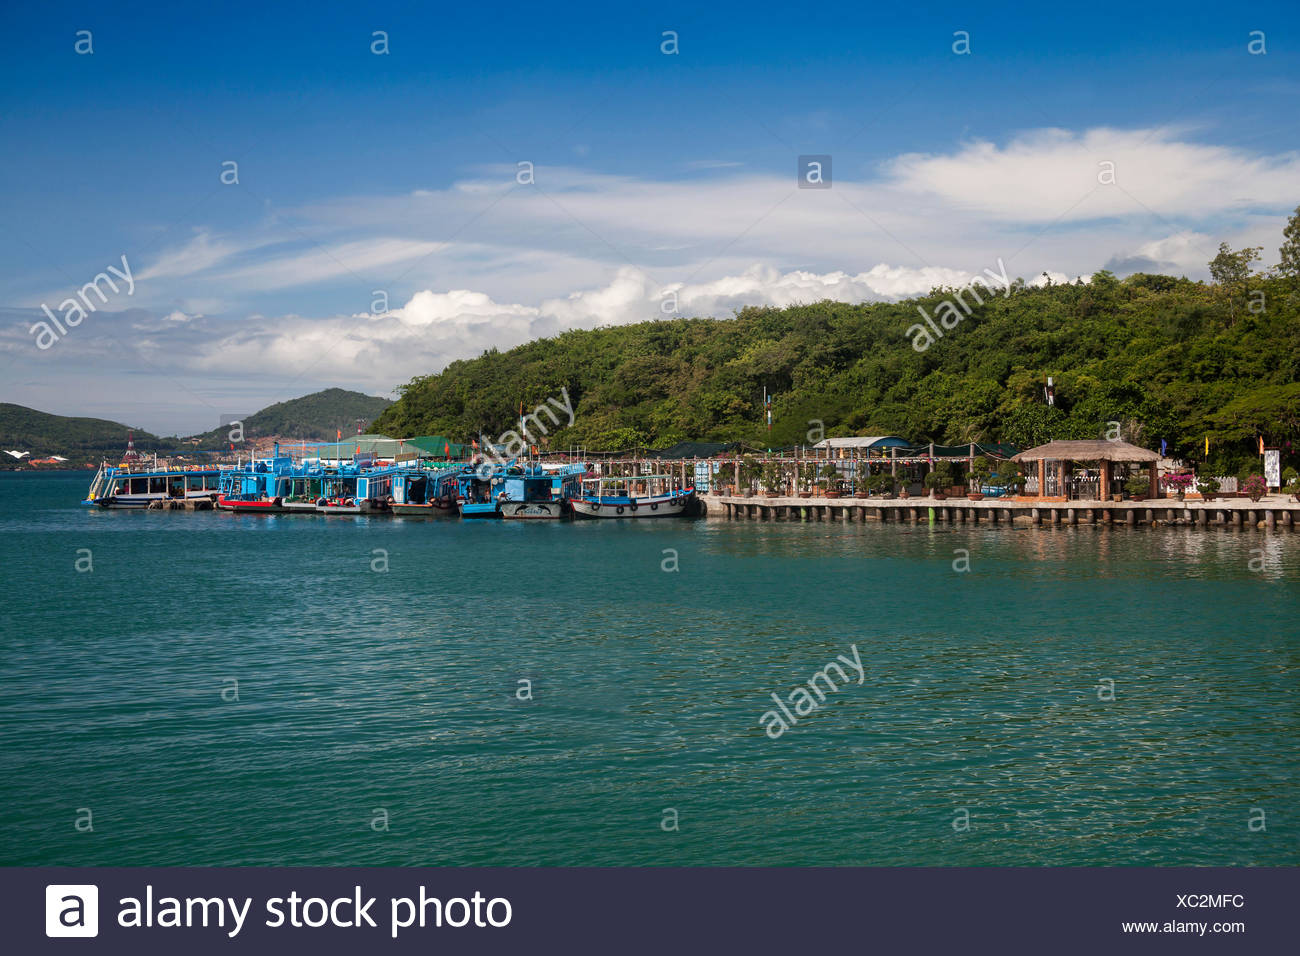 Bay, Vinpearl, island, South China Sea, sea, Asian, Asia, outside, mountains, mountainous, landscape, island, scenery, Nha, Trang - Stock Image